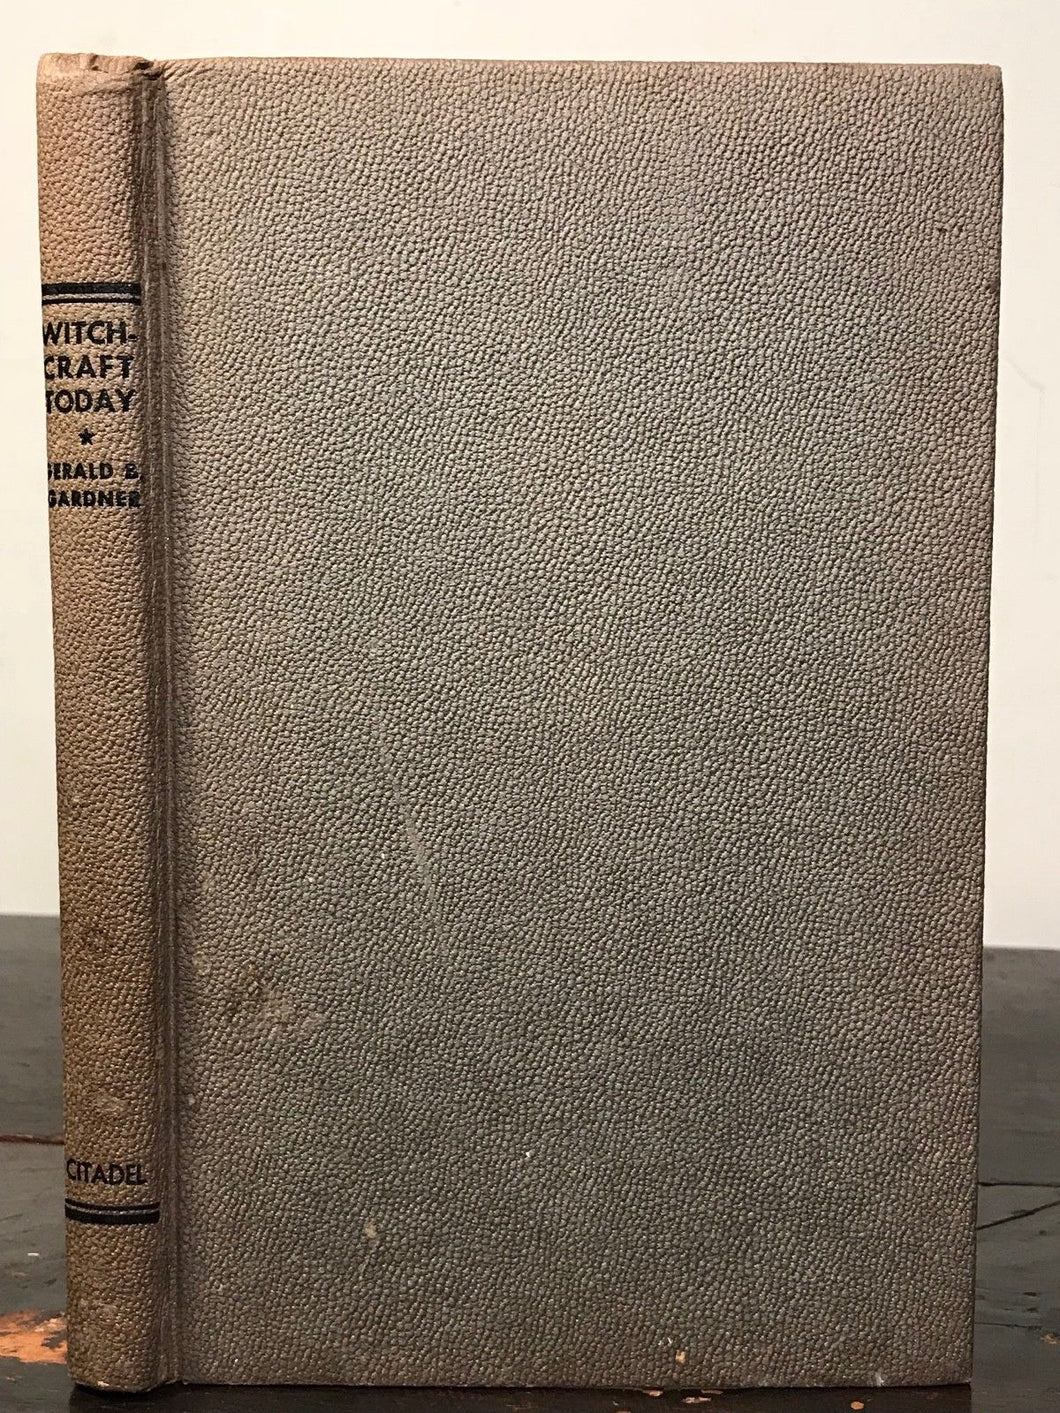 WITCHCRAFT TODAY - Gerald Gardner - 1st Edition, 1955 - Witches, Wicca, Magick